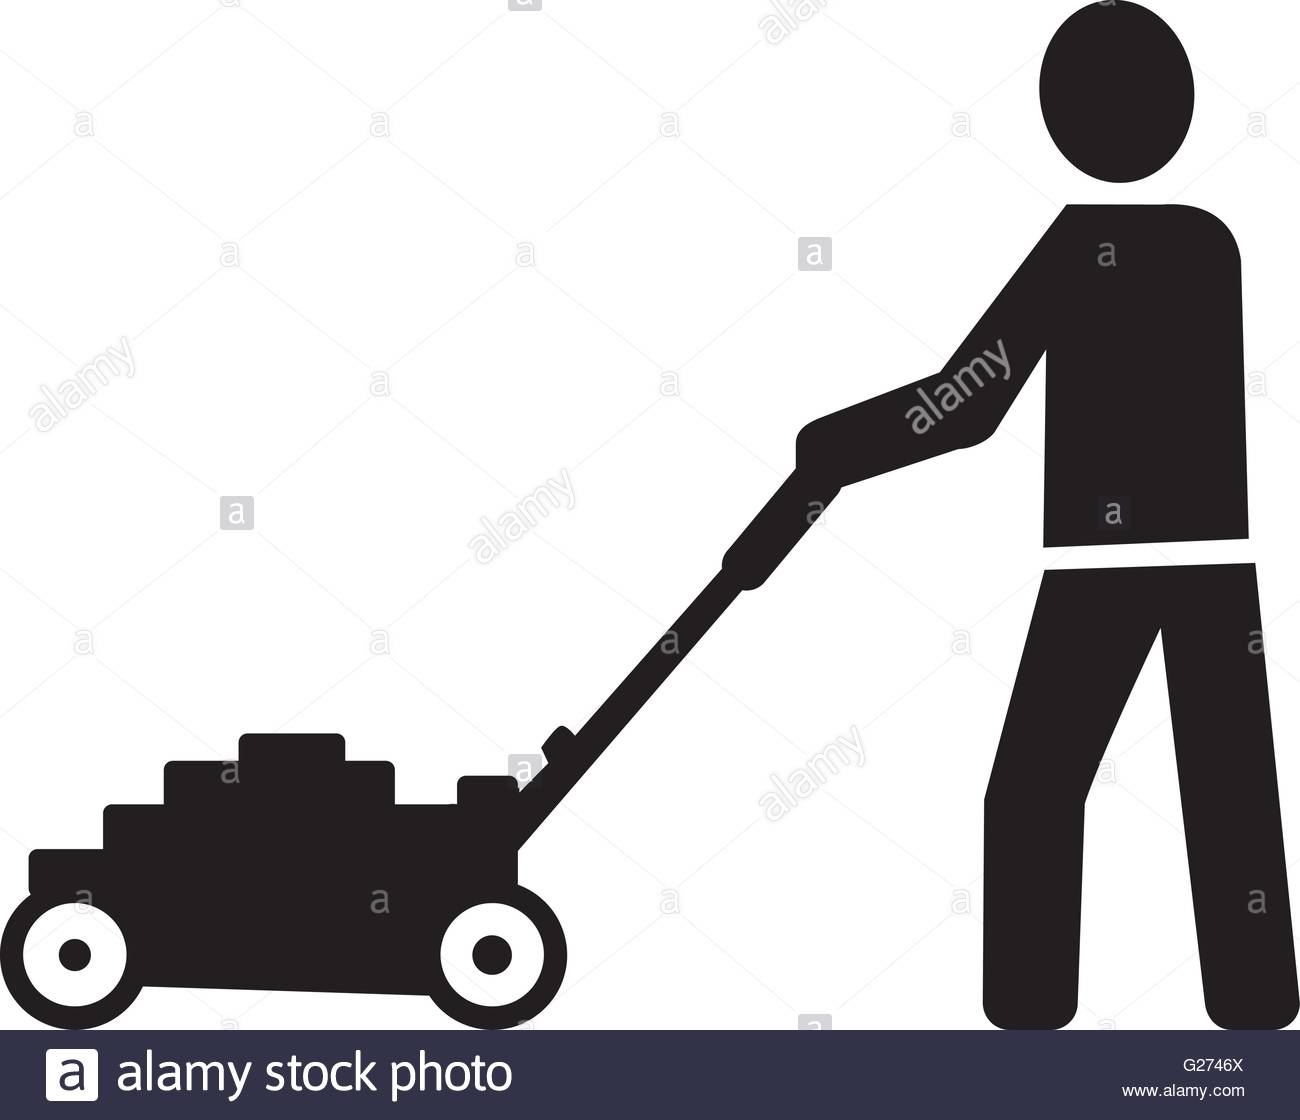 1300x1120 Lawn Mower Stock Vector Images